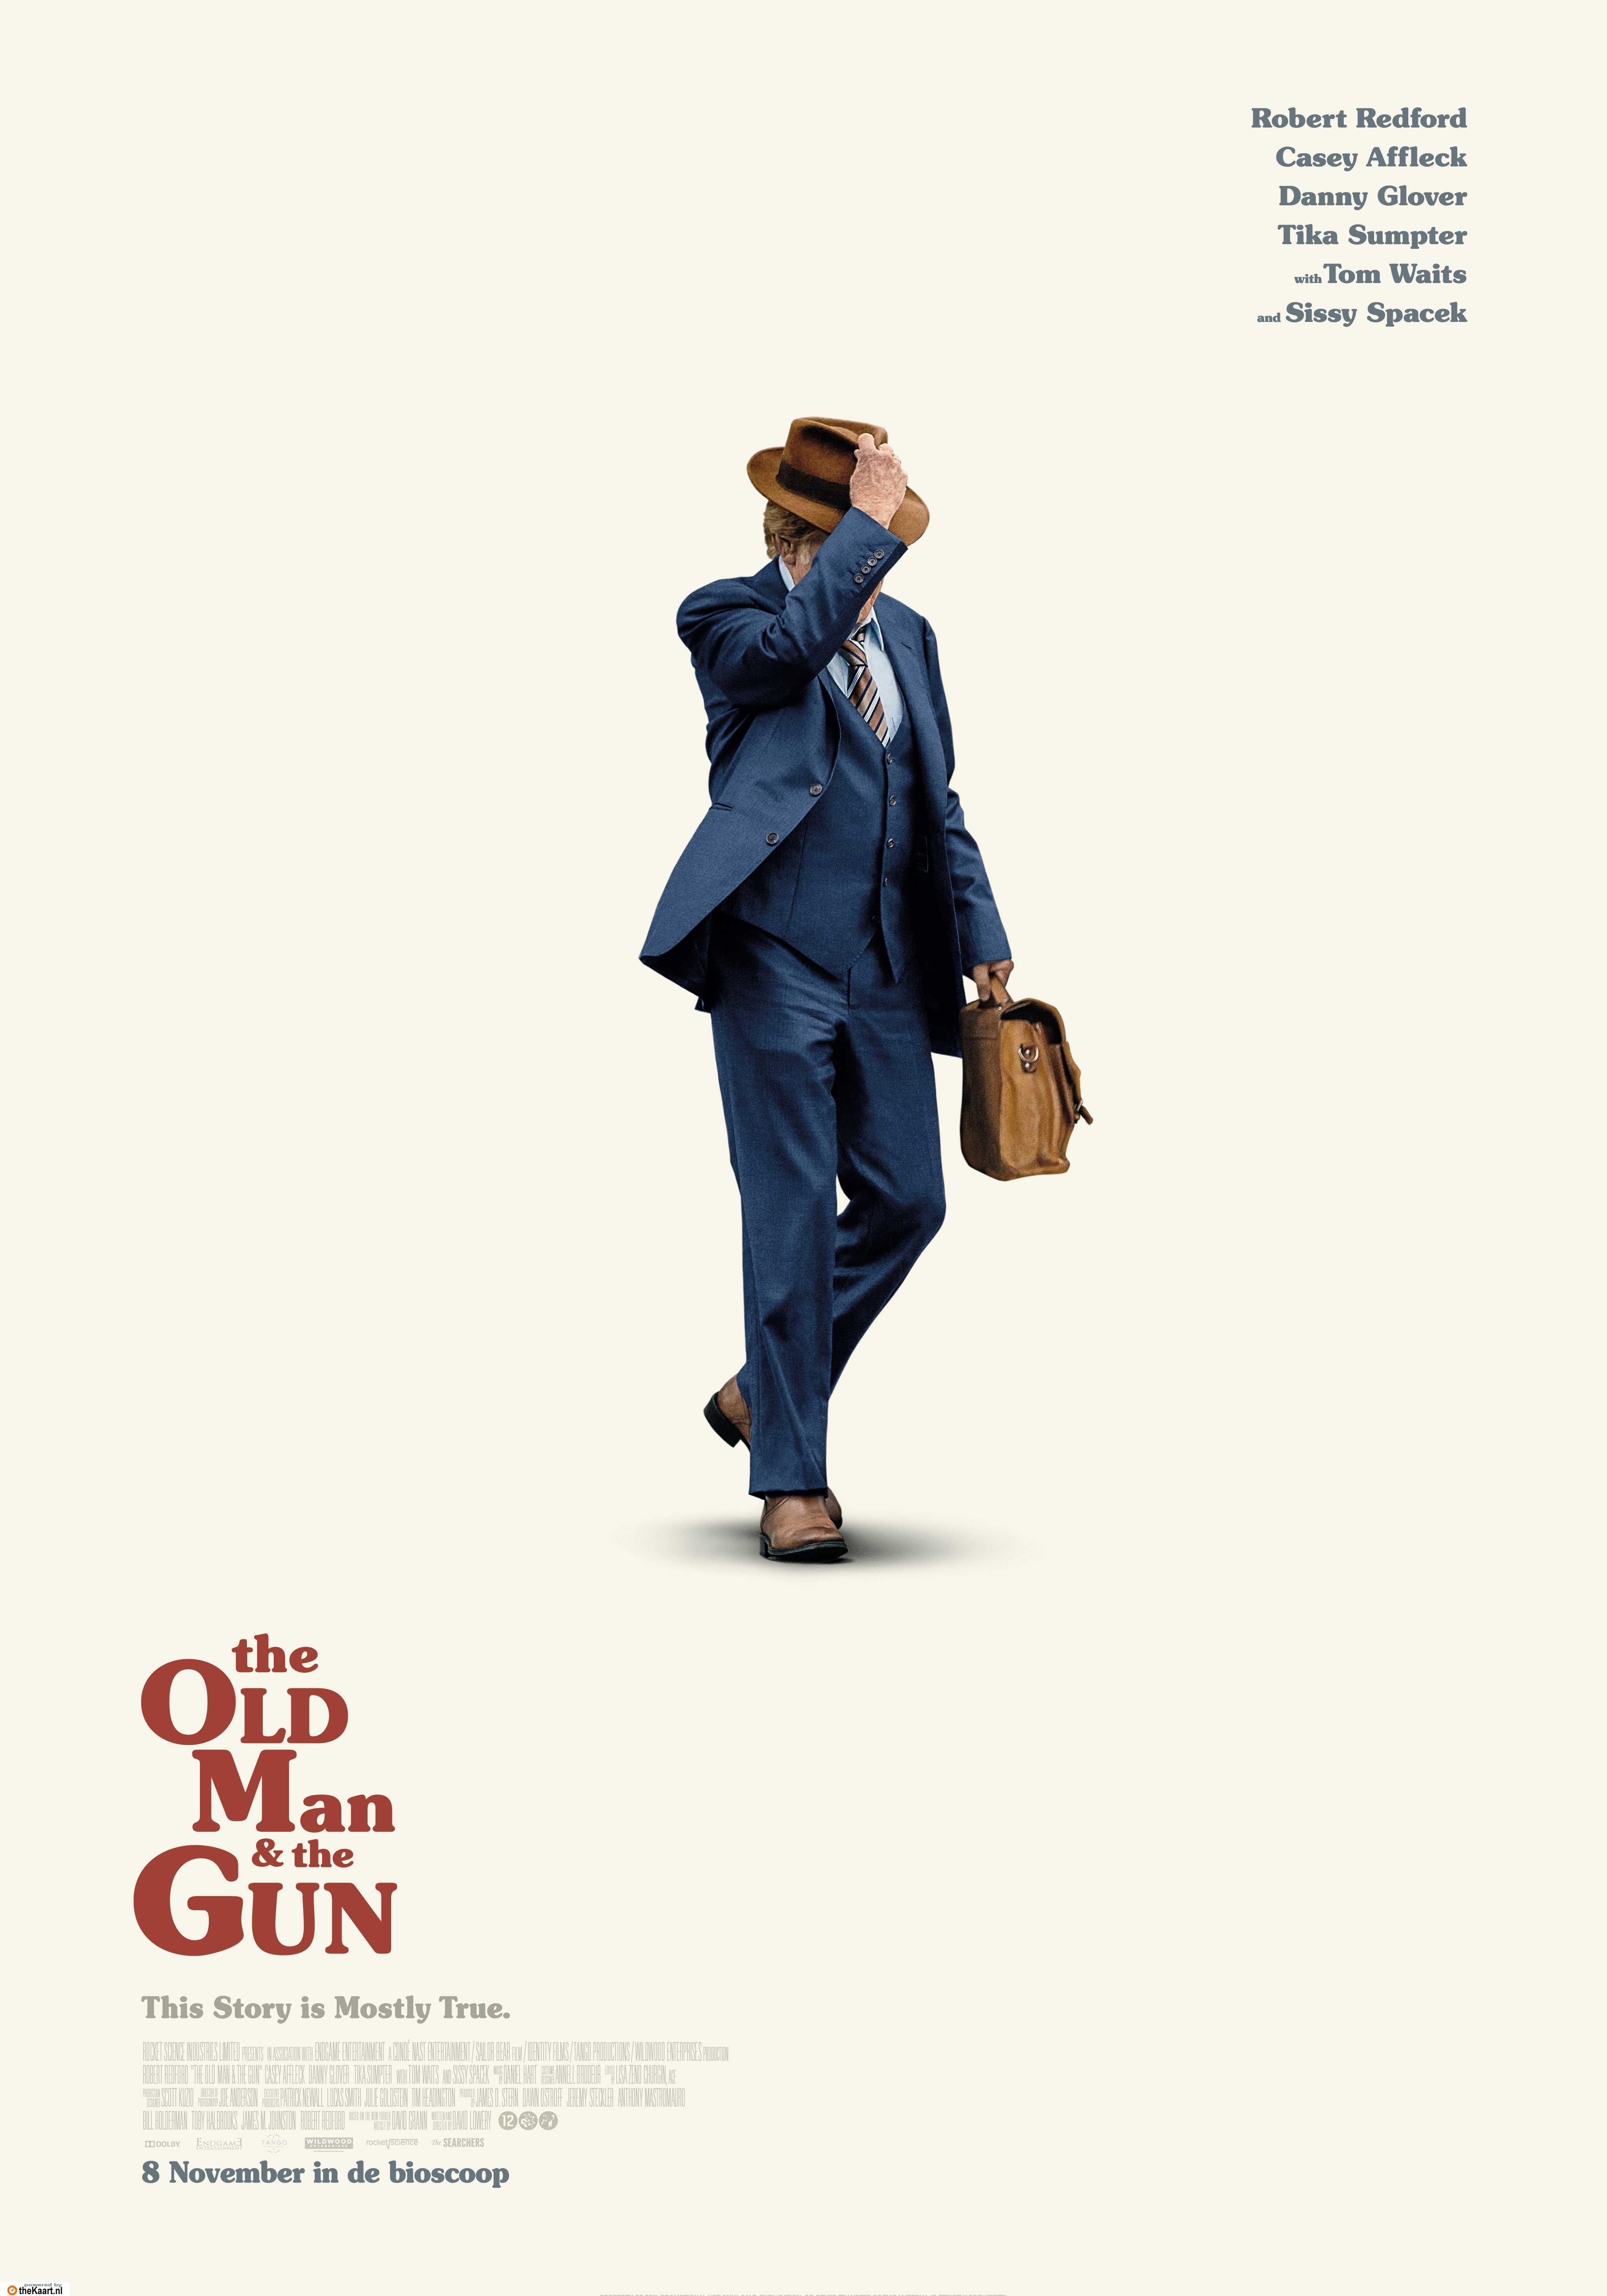 The Old Man and the Gun poster, © 2018 The Searchers